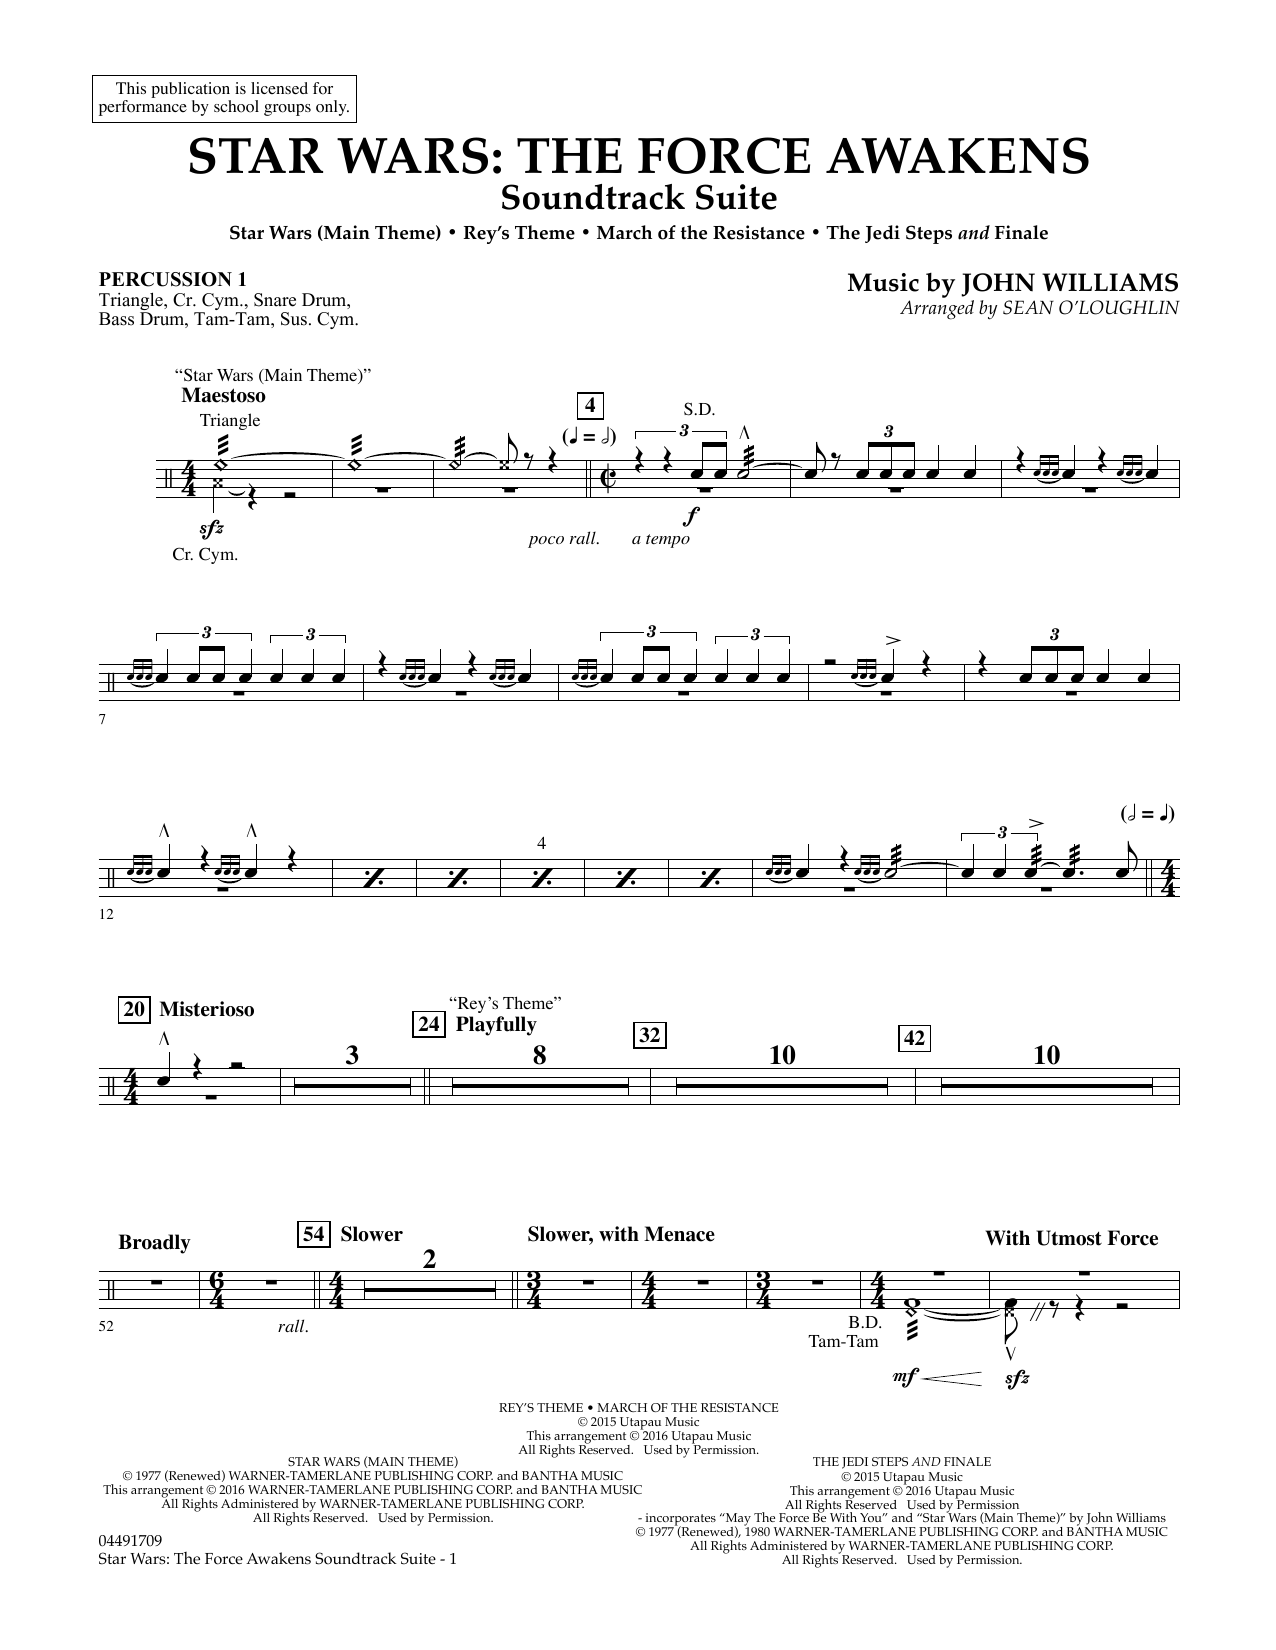 Star Wars: The Force Awakens Soundtrack Suite - Percussion 1 (Full Orchestra)